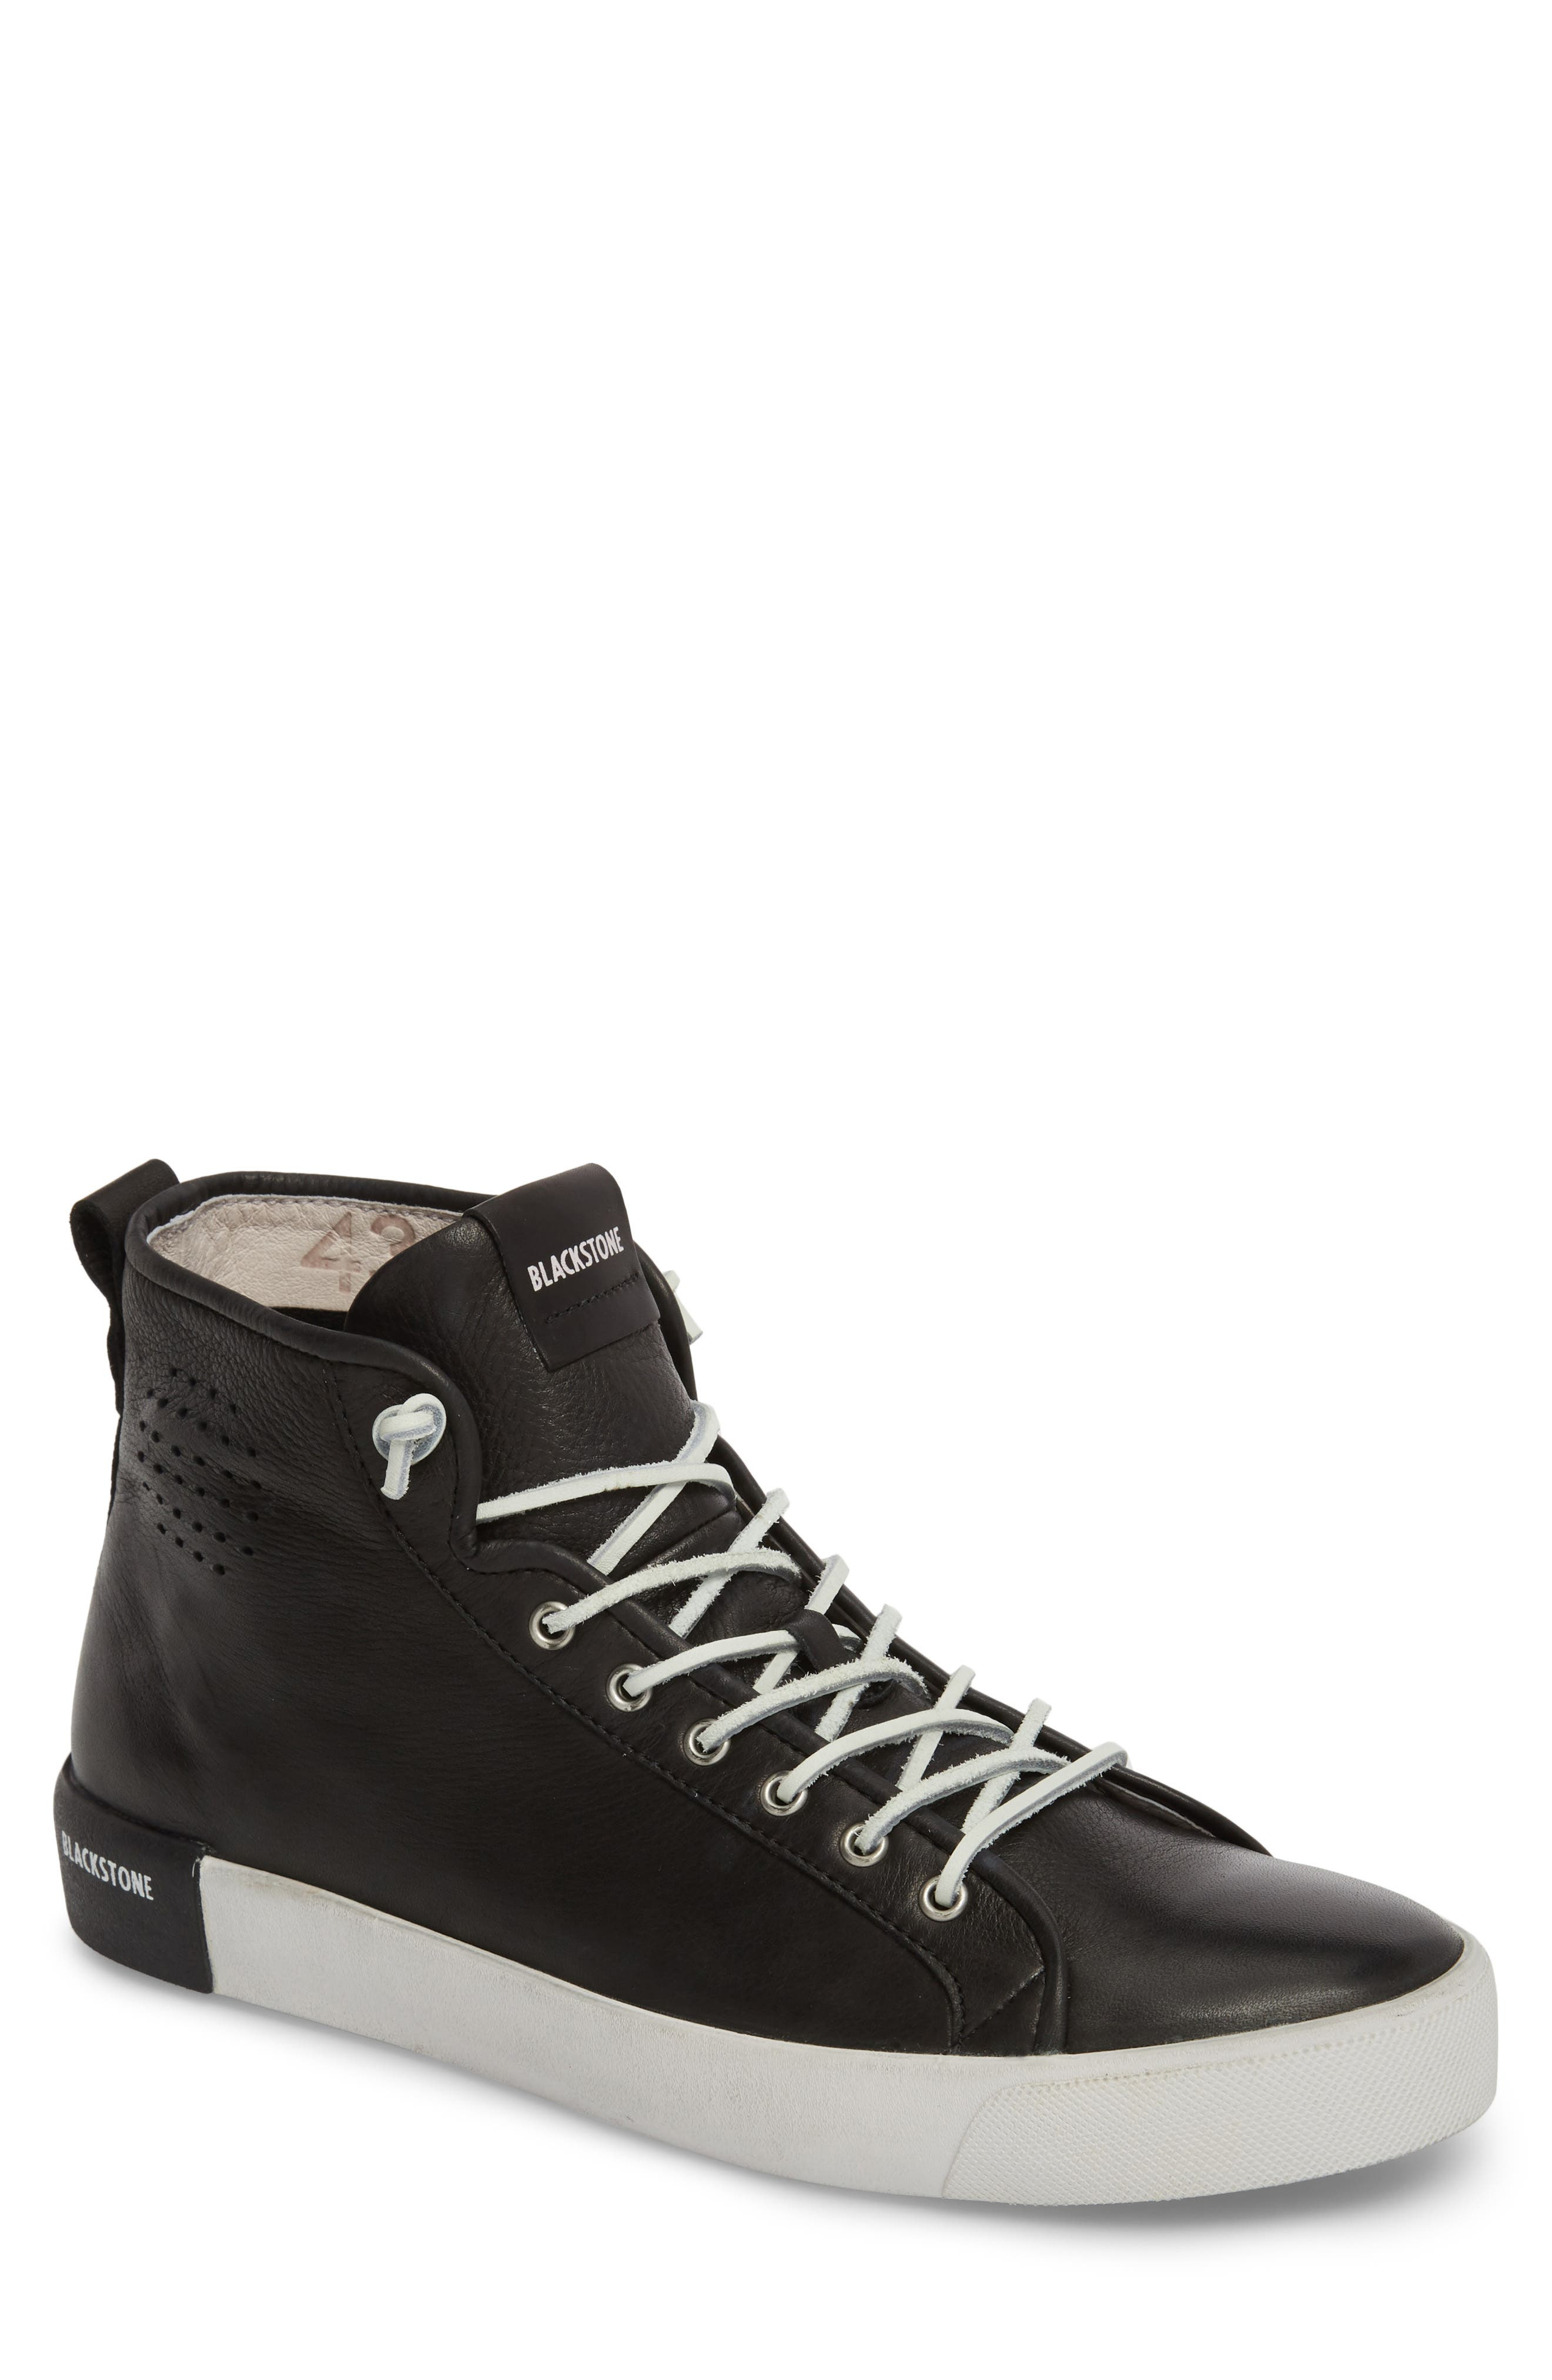 PM43 Slip-On High Top Sneaker,                             Main thumbnail 1, color,                             Black Leather